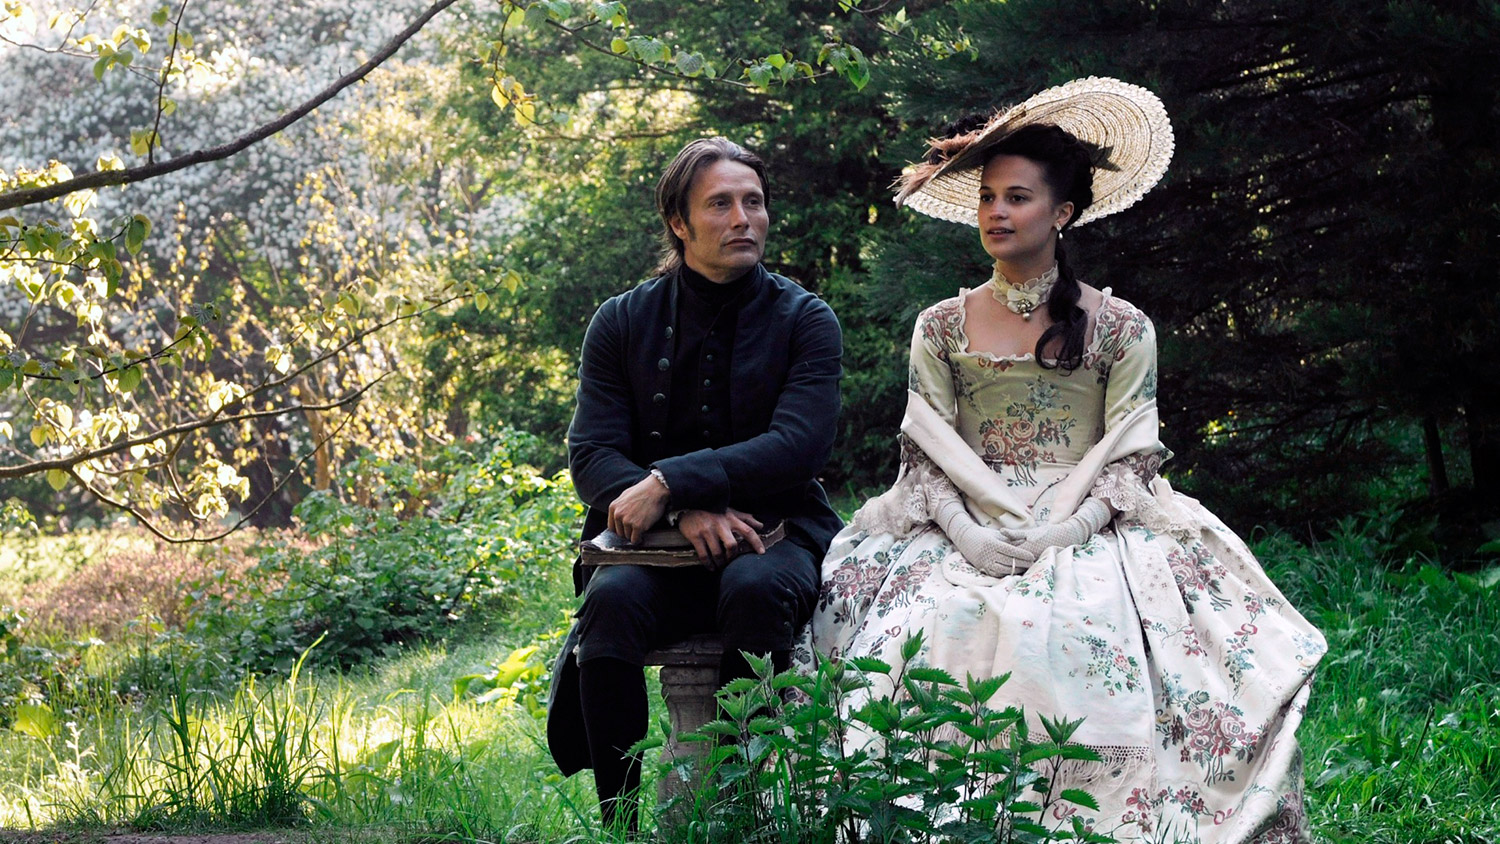 Erotic Foreign Films - A Royal Affair, in the garden